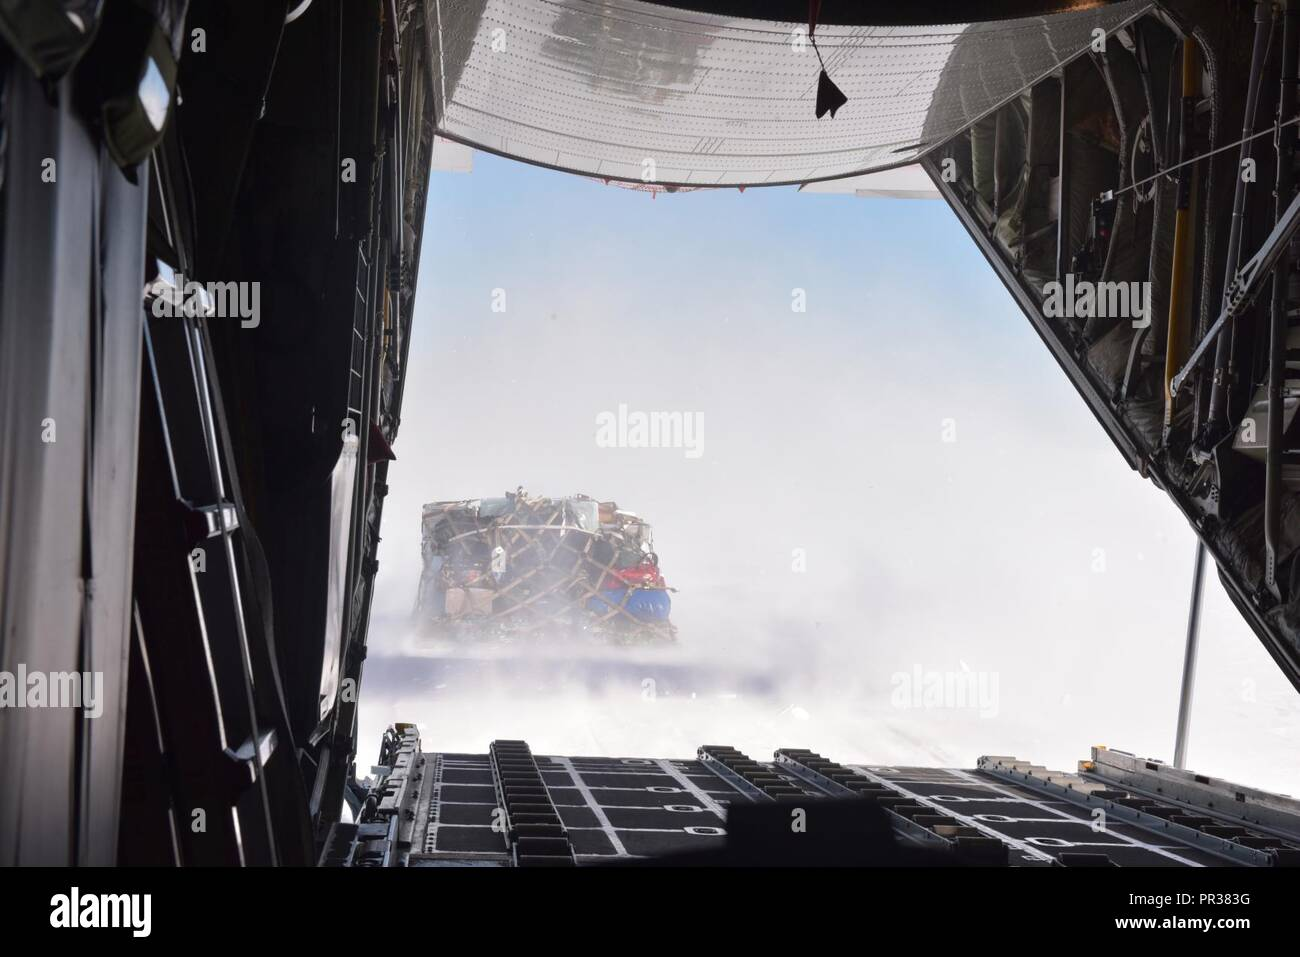 Air Force aircrews assigned to the New York Air National Guard's 109th Airlift Wing conduct a combat offload of cargo off a 109th Airlift Wing LC-130 Skibird transported to the East Greenland Ice Core Project (GRIP) July 29, 2017. That was the 13th mission the 109th Airlift Wing made to East GRIP this season to transport cargo and scientists. The 109th Airlift Wing is uniquely equipped to make landings on snow and ice in support of National Science Foundation research in Greenland. U.S. Air National Guard - Stock Image